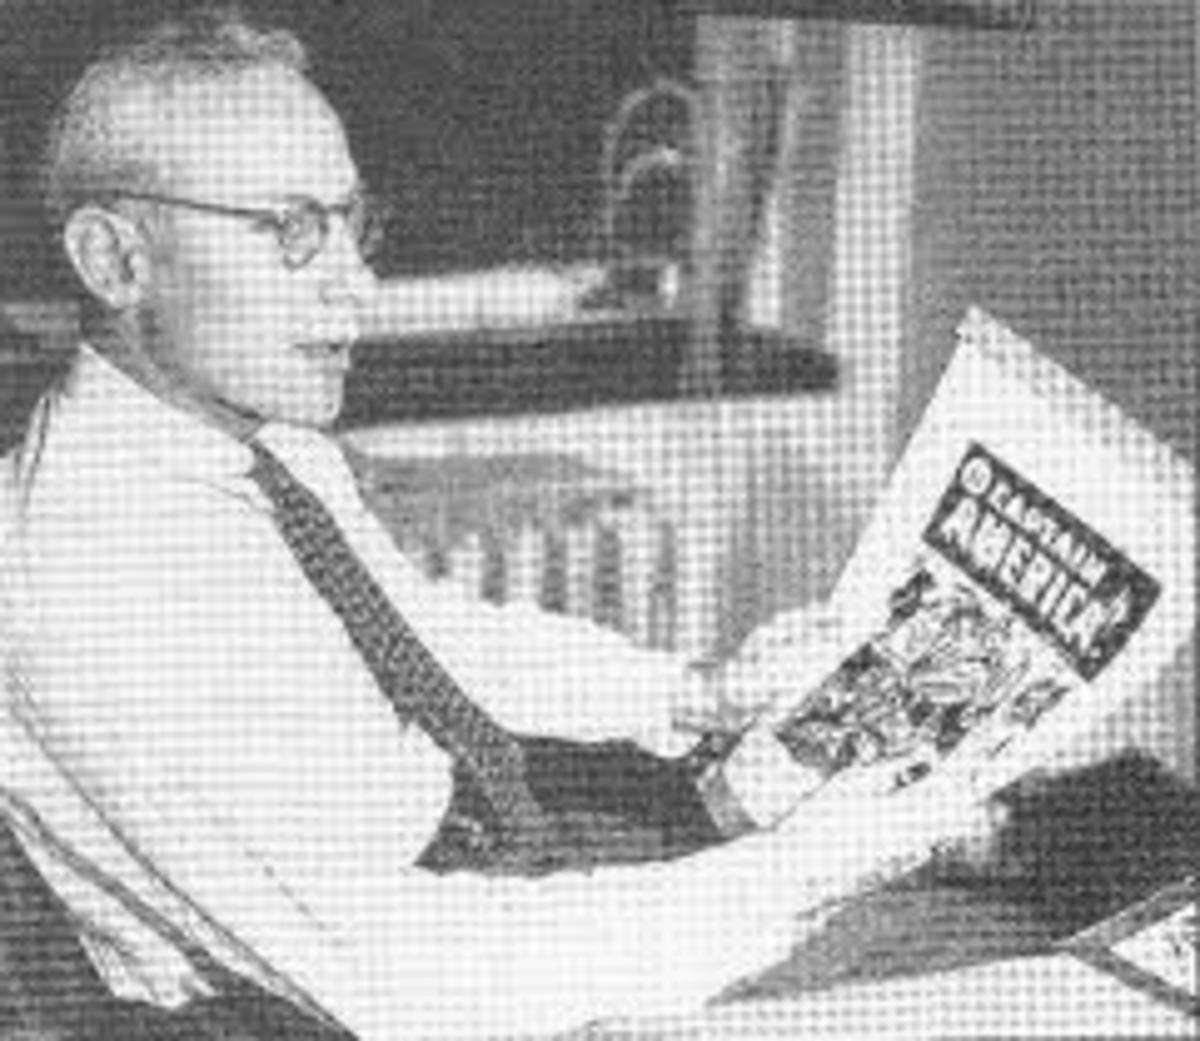 Martin Goodman Marvel Comics editor during the early 60s